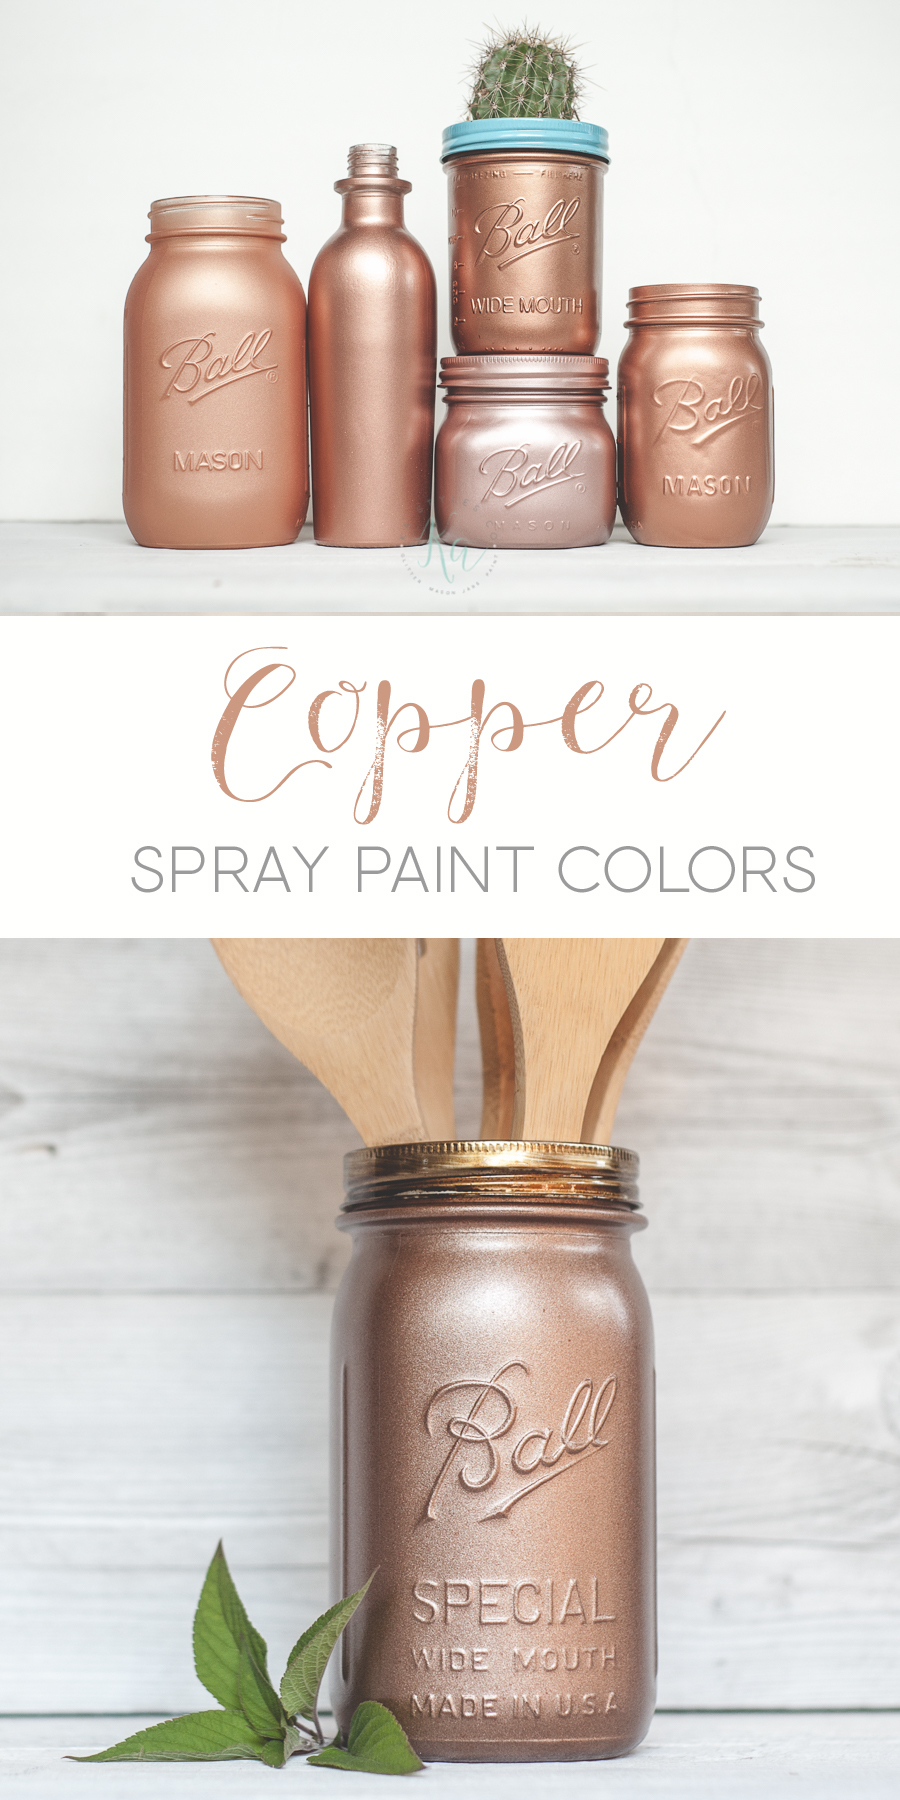 Copper spray paint colors. Rust-oleum and Krylon color samples.